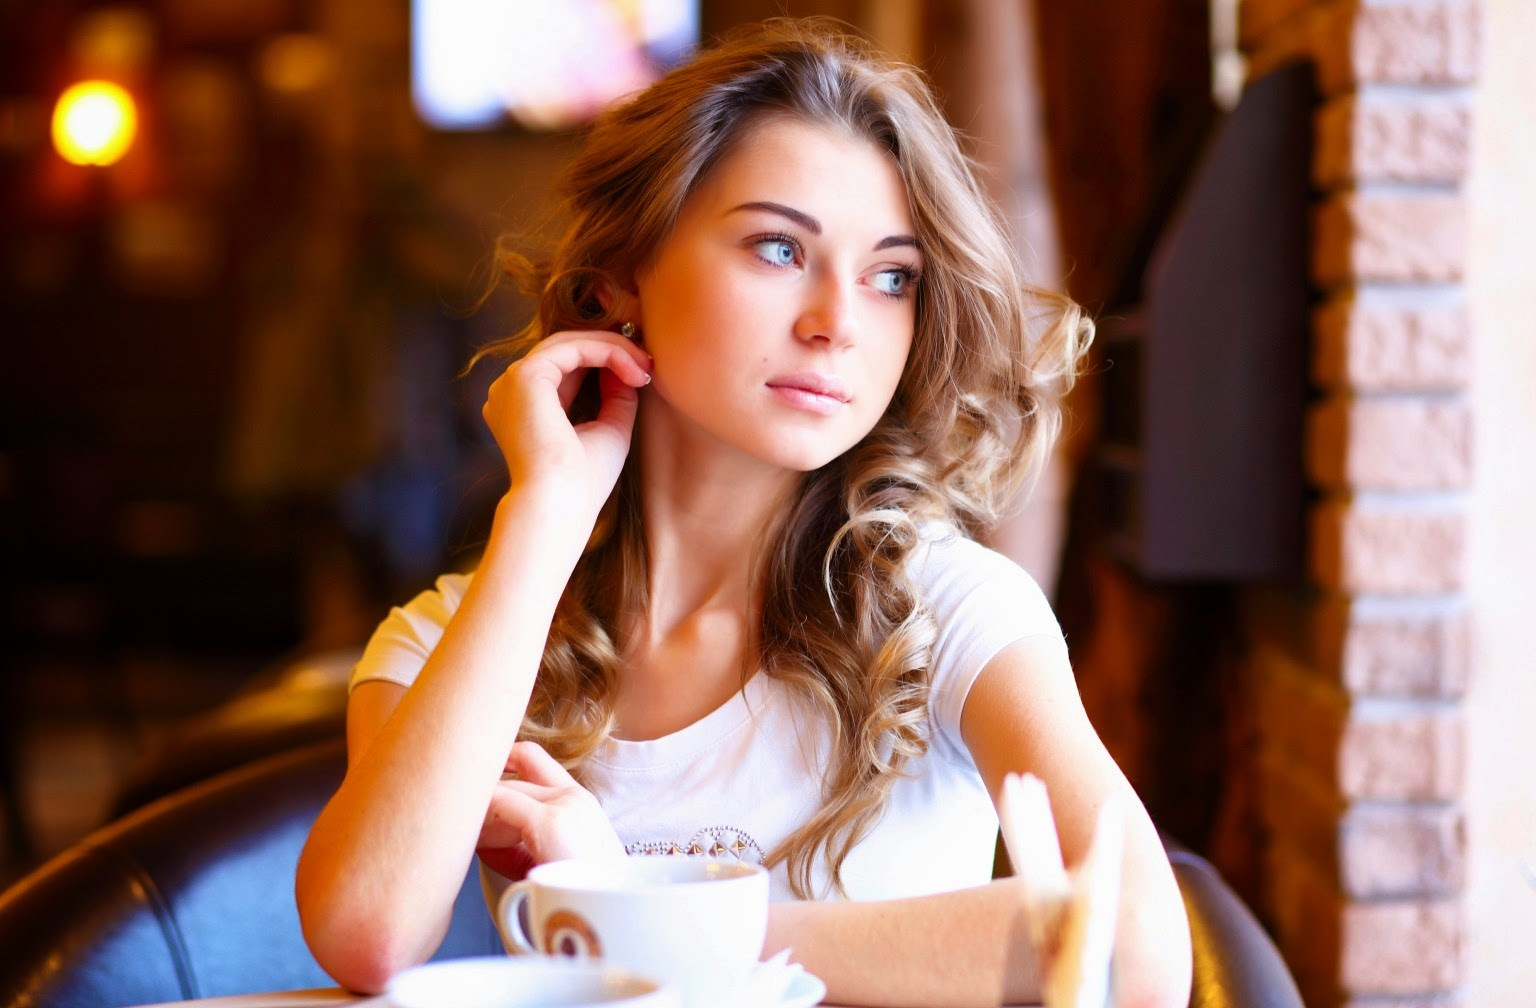 Meet Single Women - Where to Go and How to Attract Single Women